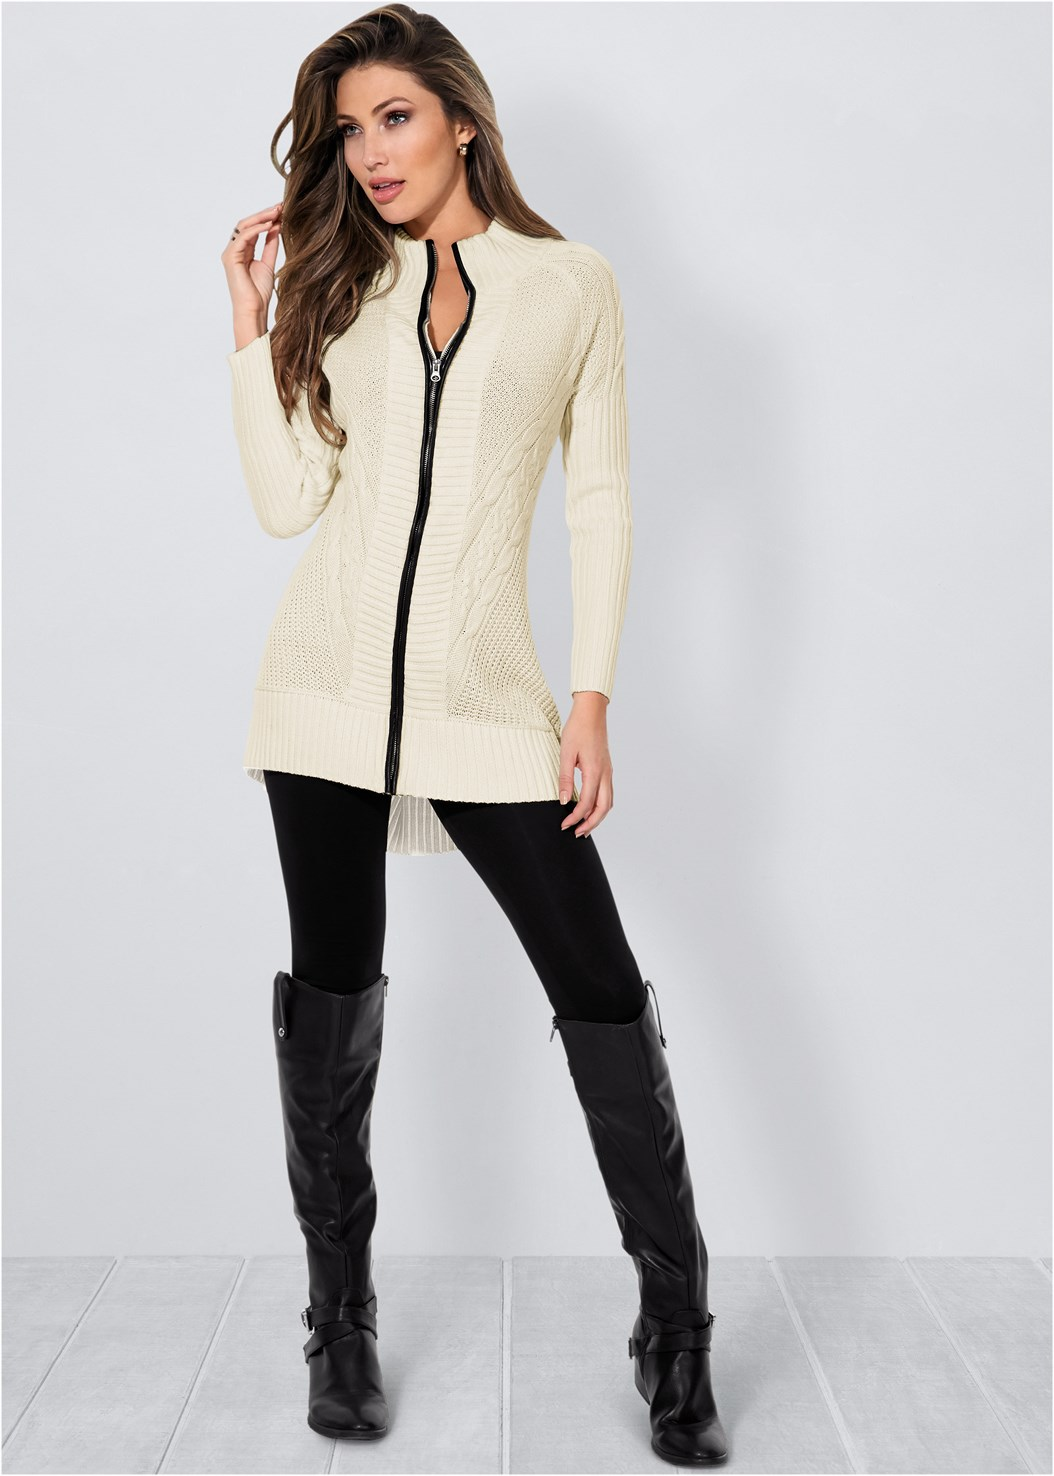 Faux Leather Trim Cardigan,Basic Leggings,Buckle Riding Boots,Fold Over Boot,Stud Detail Scarf